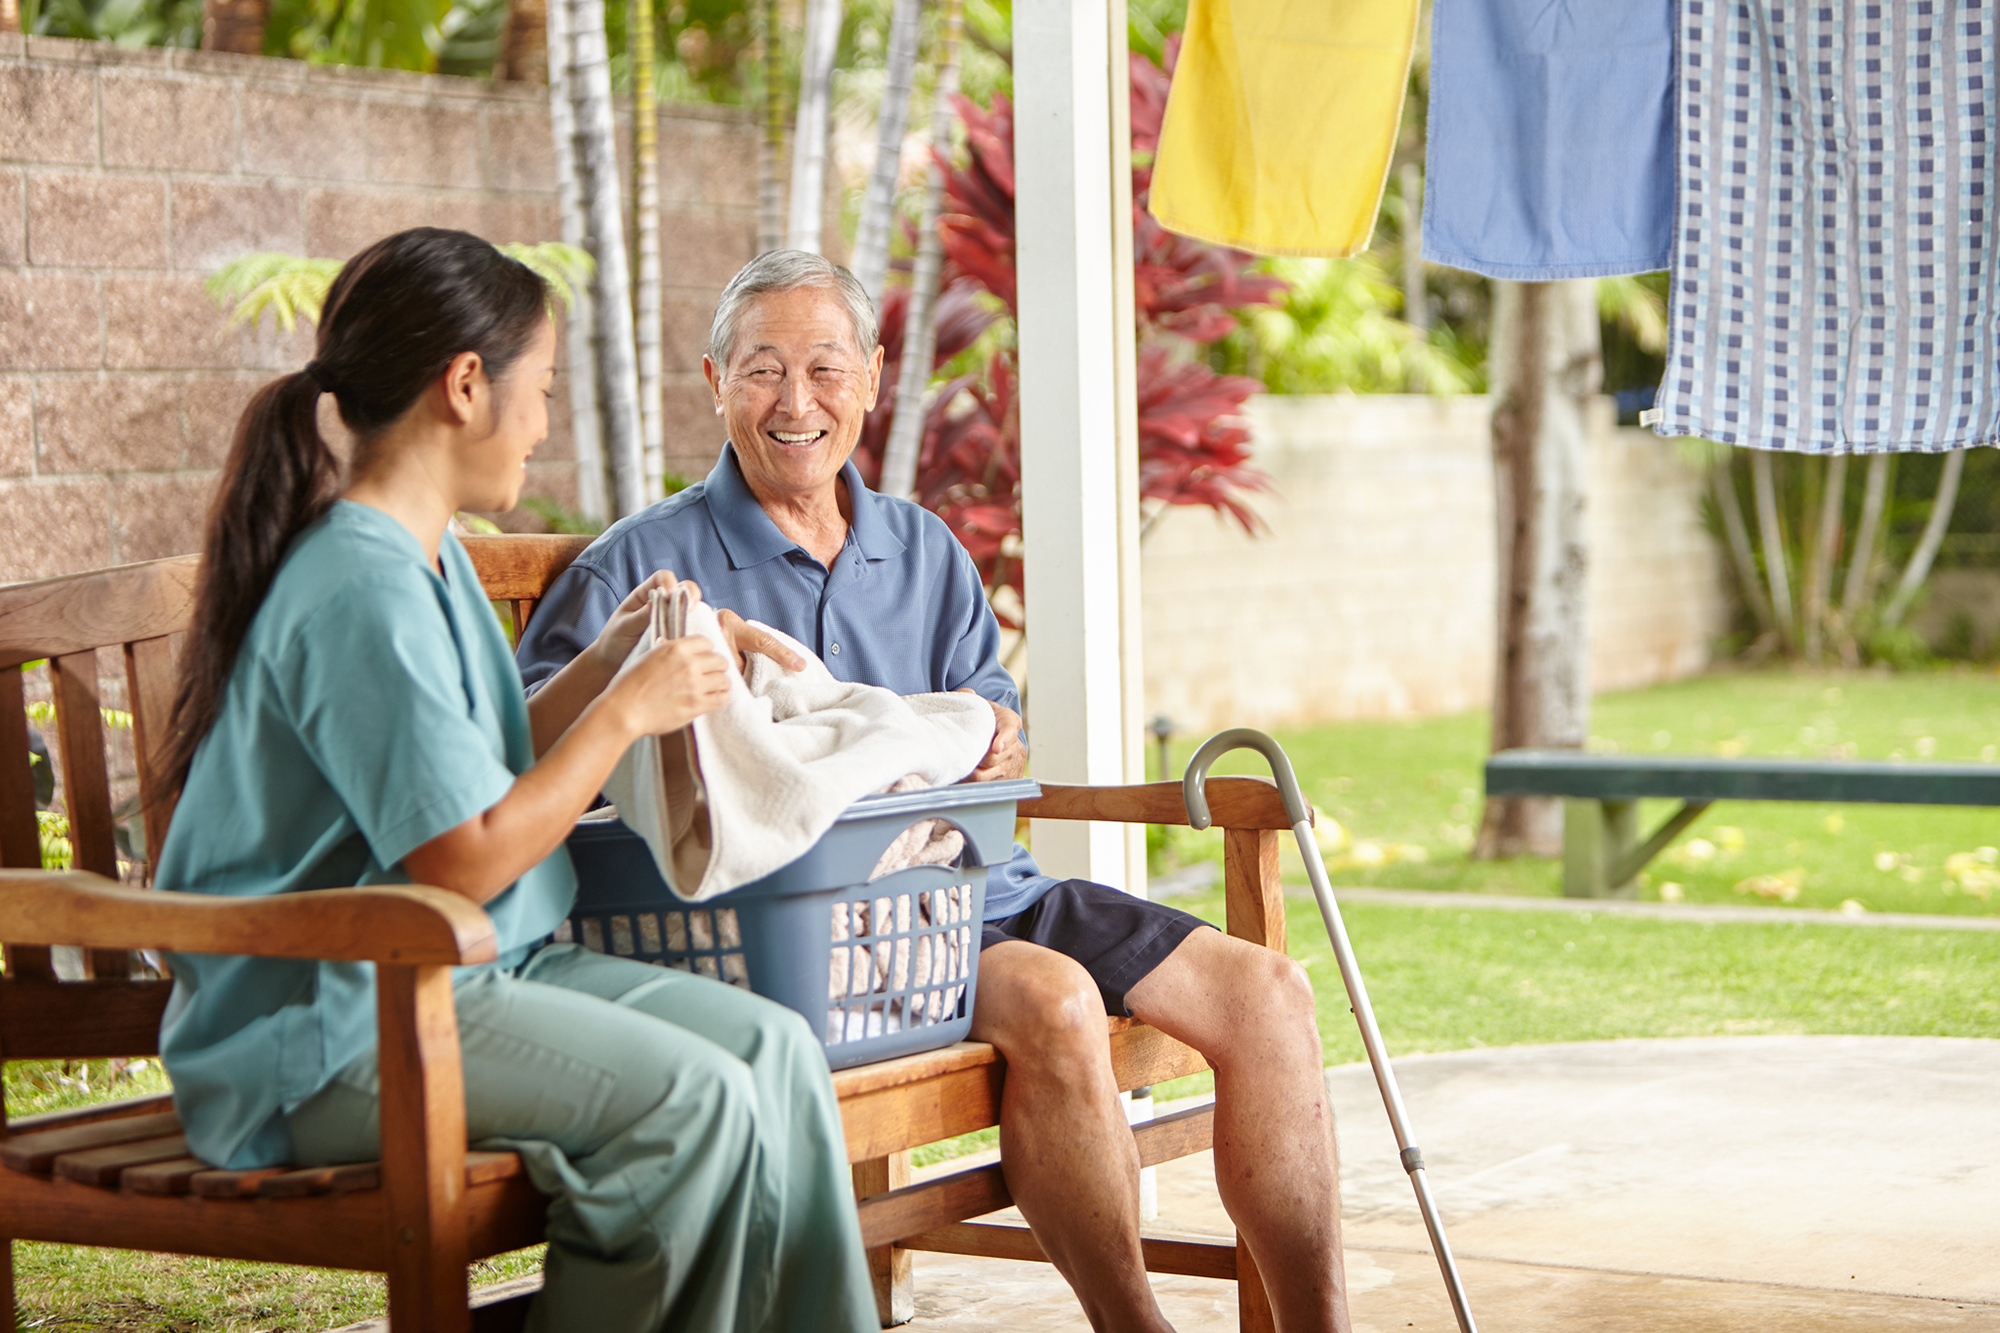 Hawaii senior aging in place with help of home caregiver doing laundry